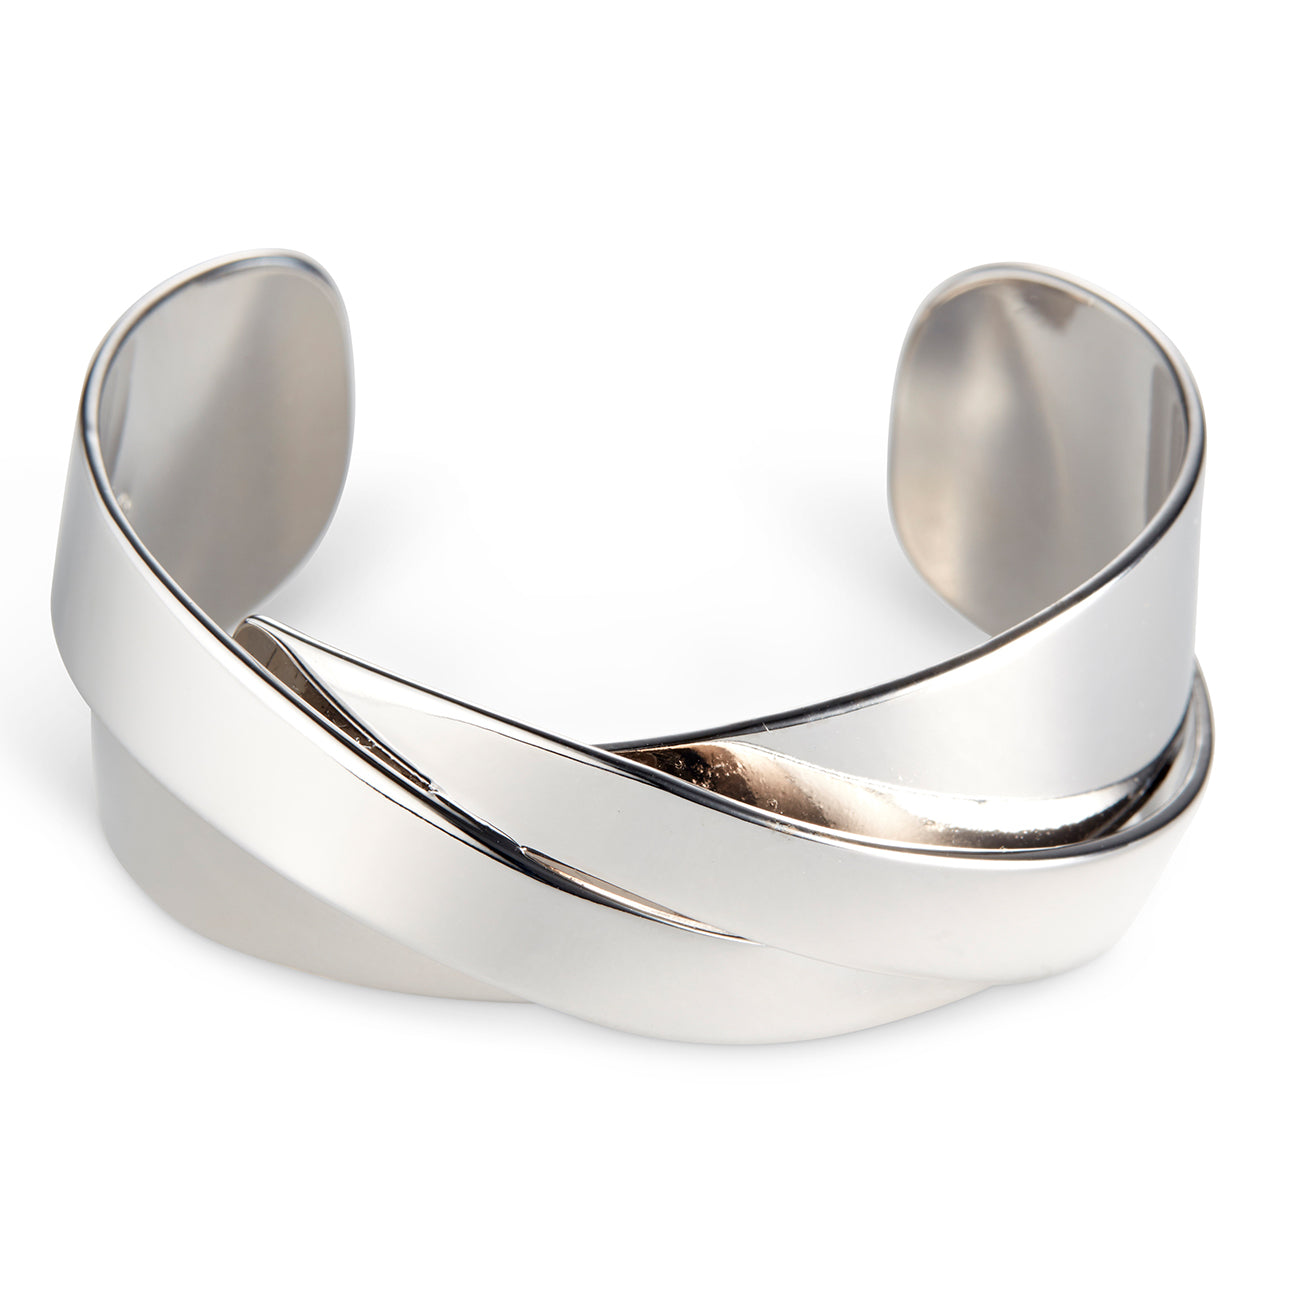 The Lovers Cuff by Jenny Bird in Rhodium